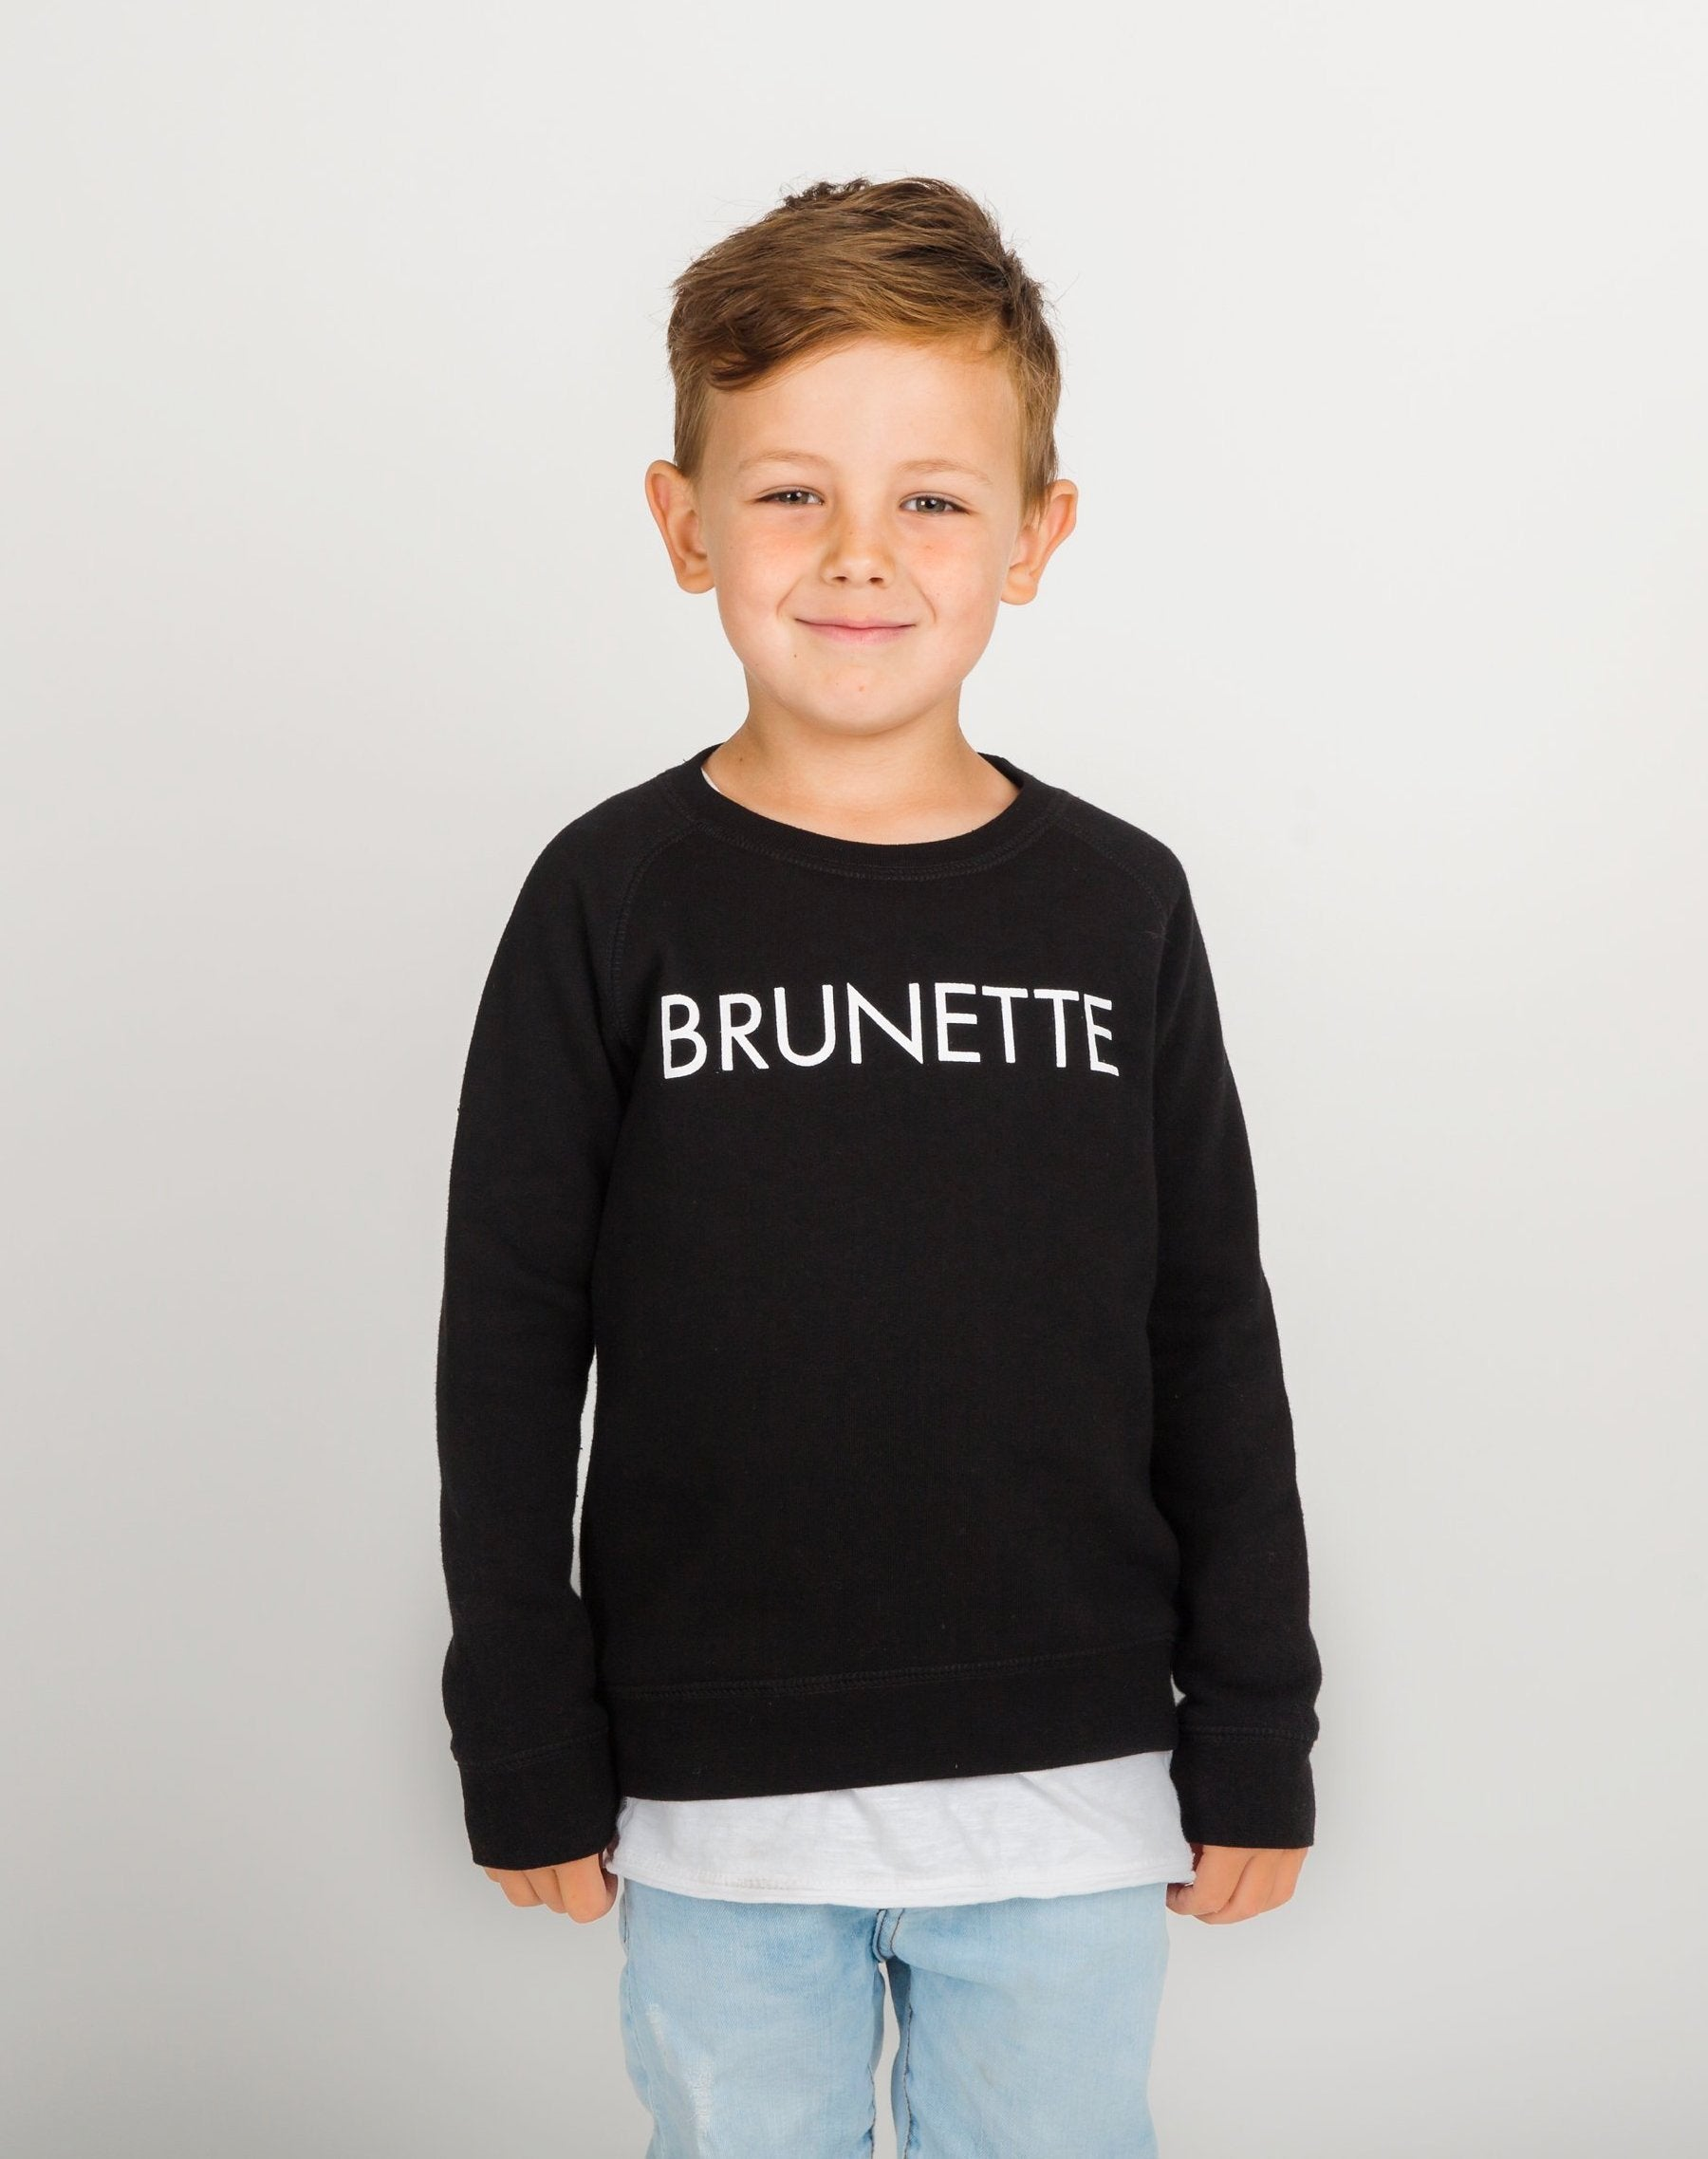 Photo of the Brunette Little Babes classic crew neck sweatshirt in black by Brunette the Label.